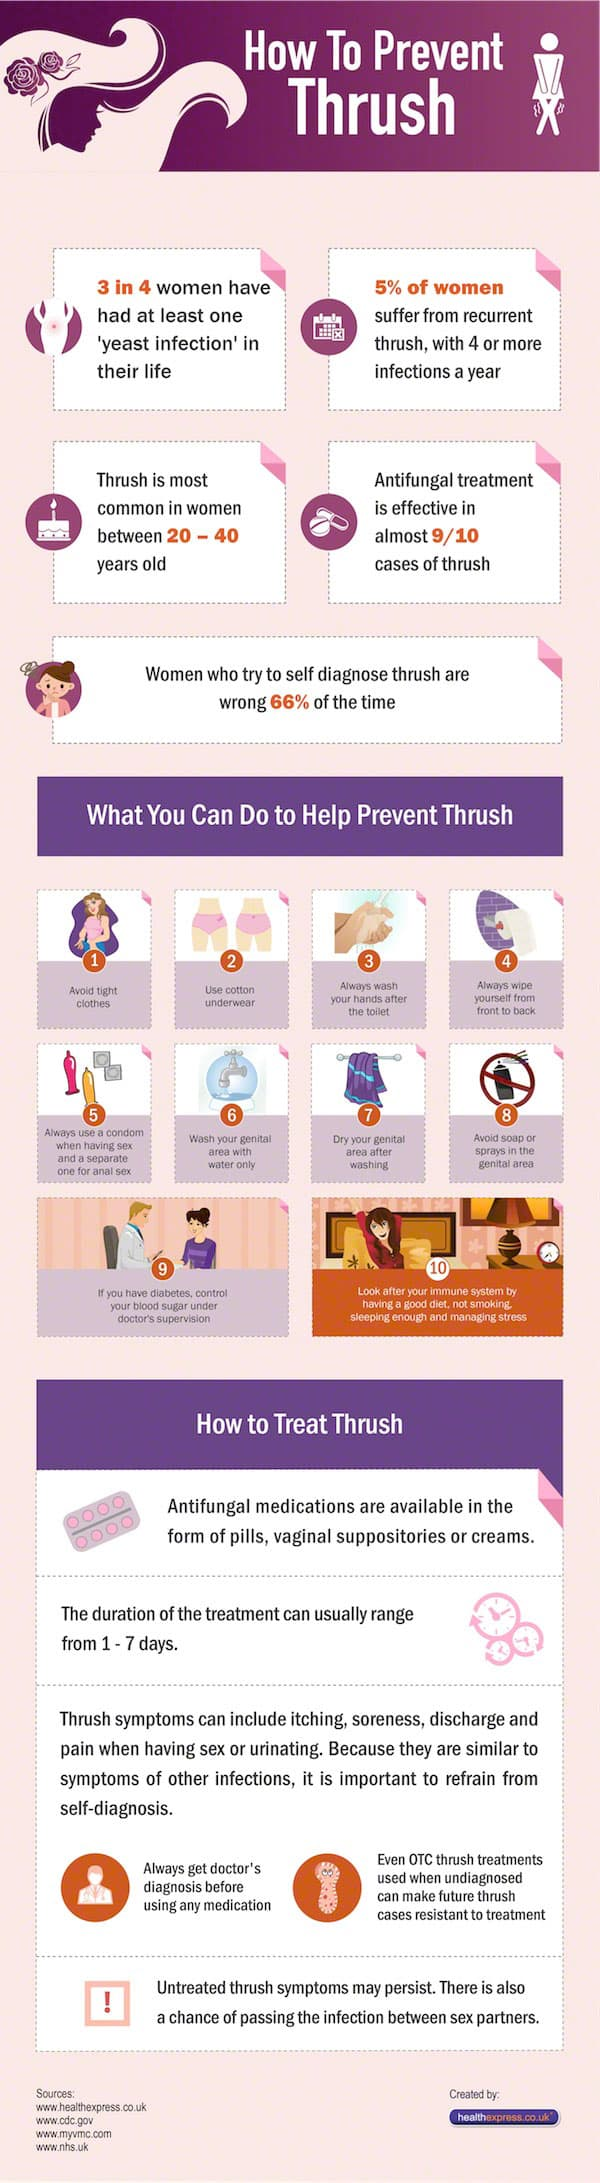 How To Prevent Thrush